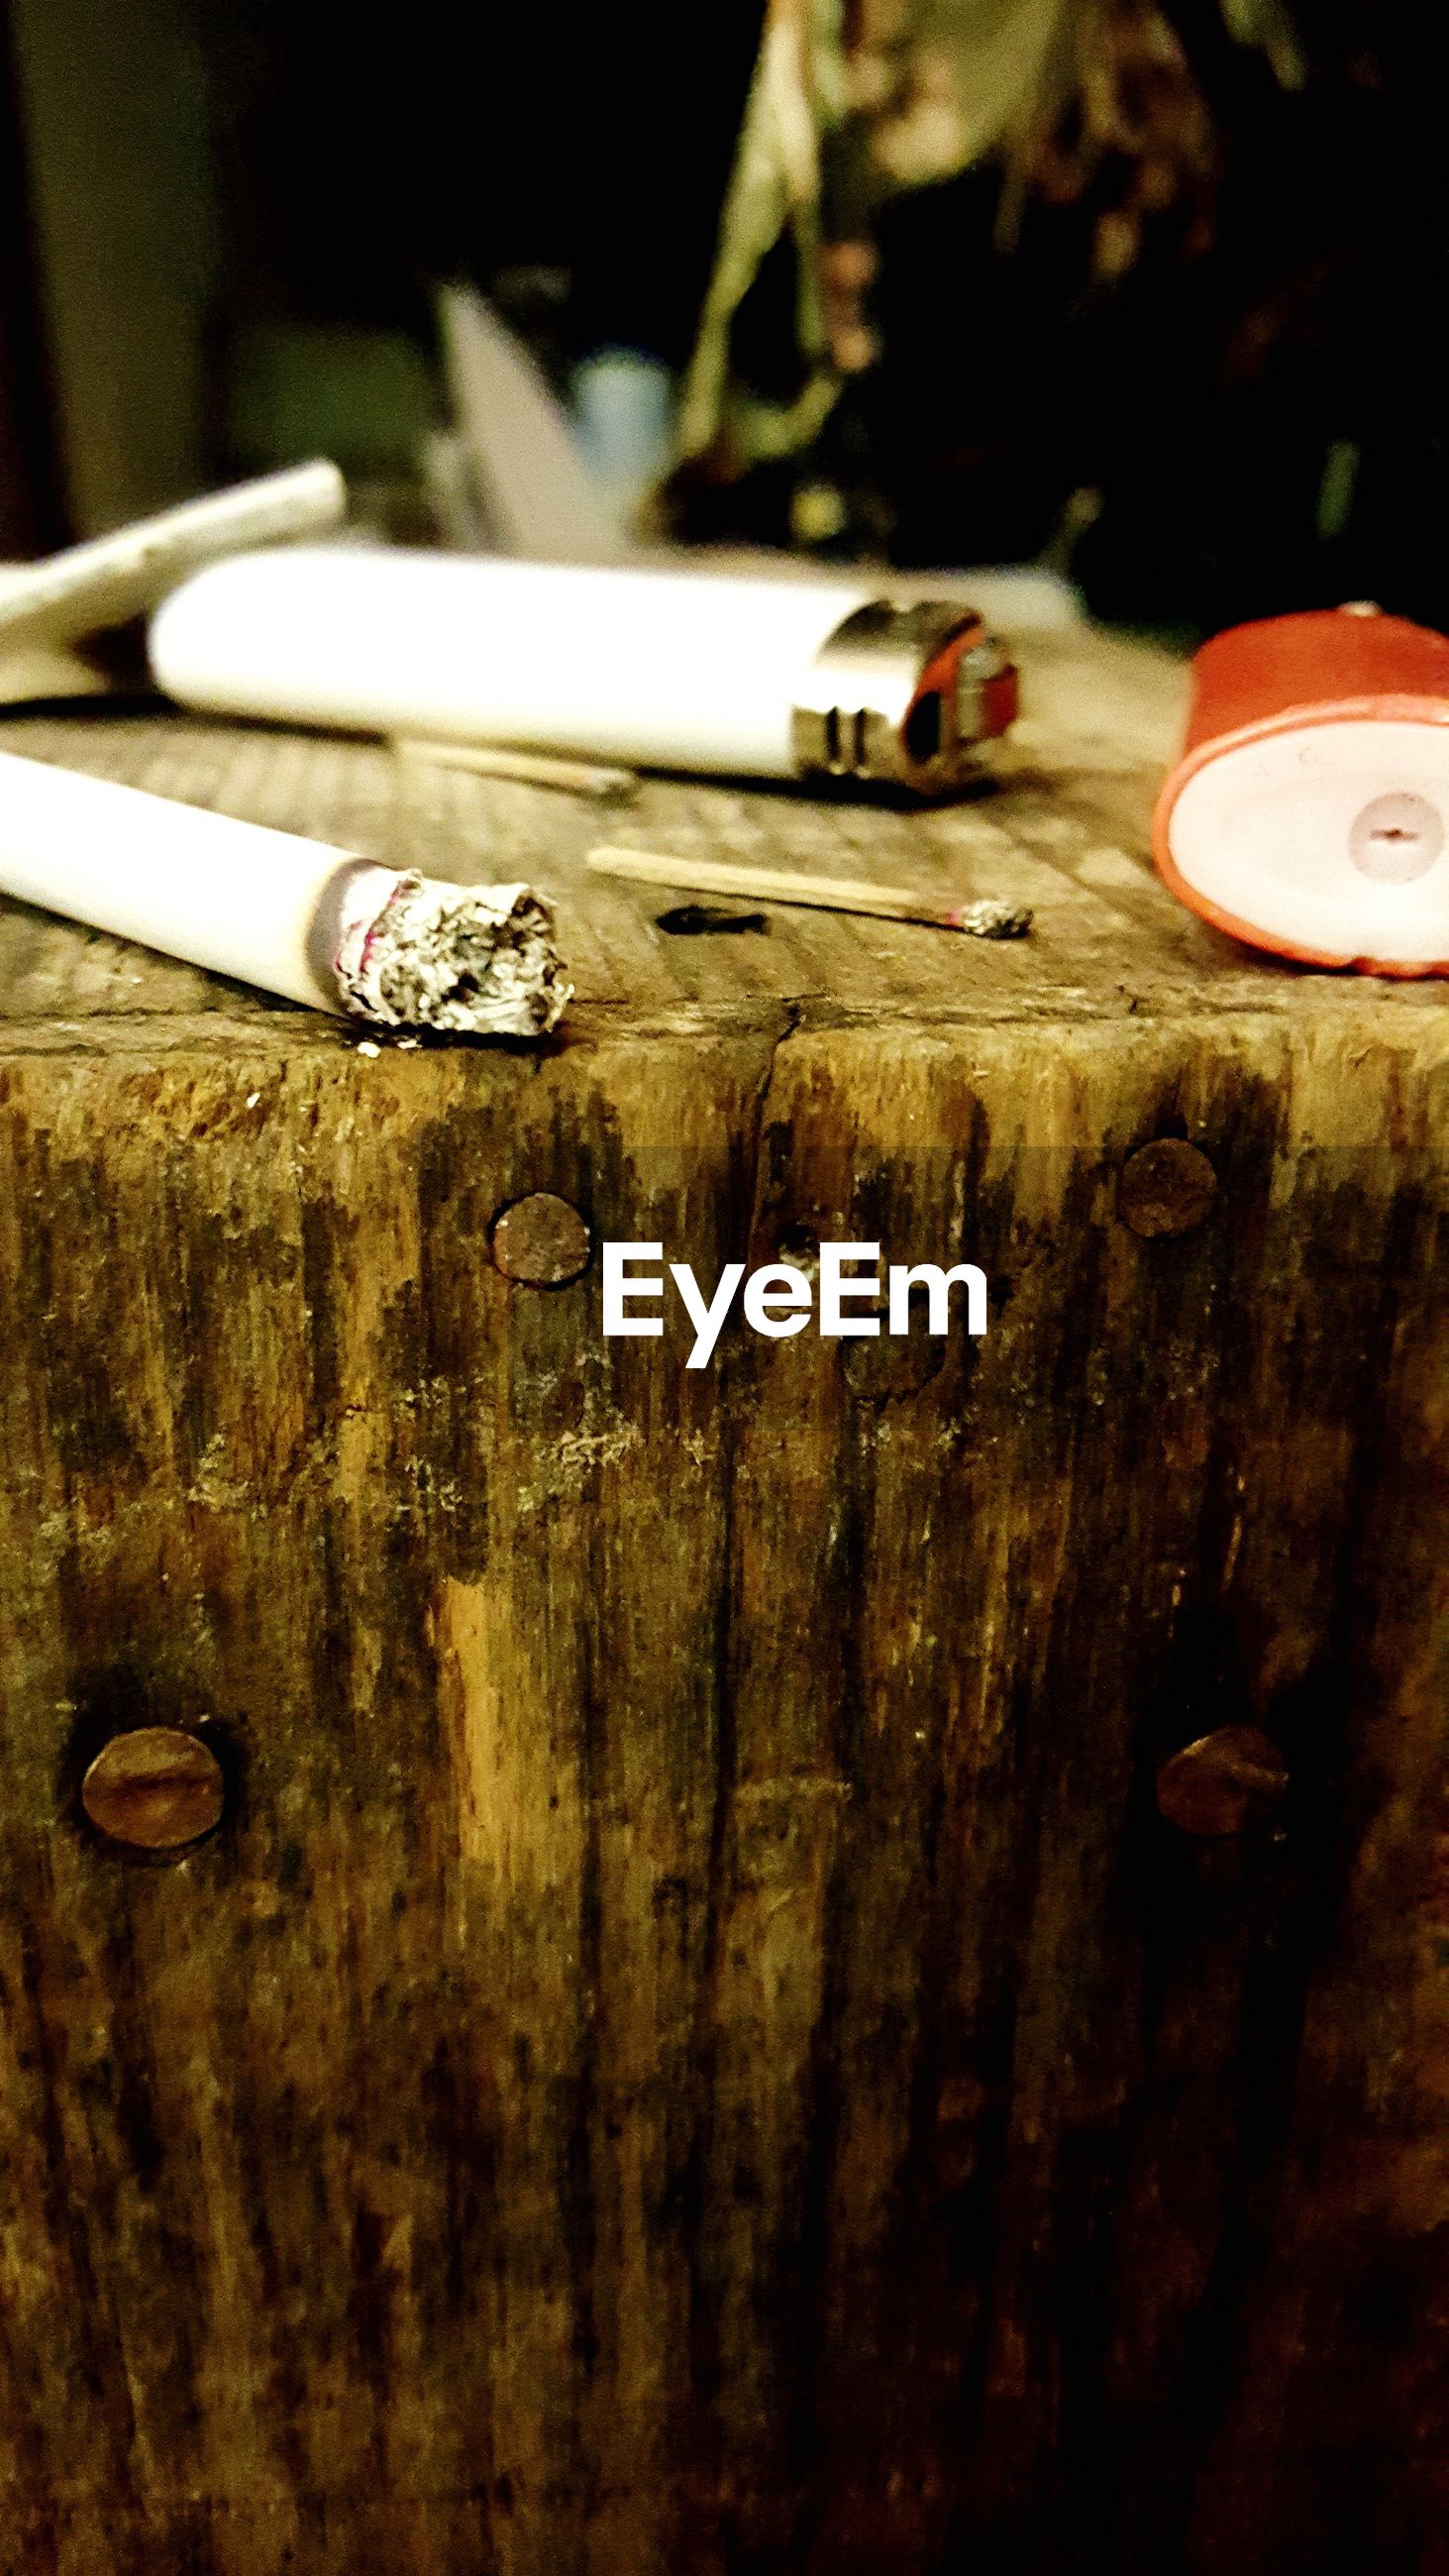 Cigarette with lighter on wooden structure